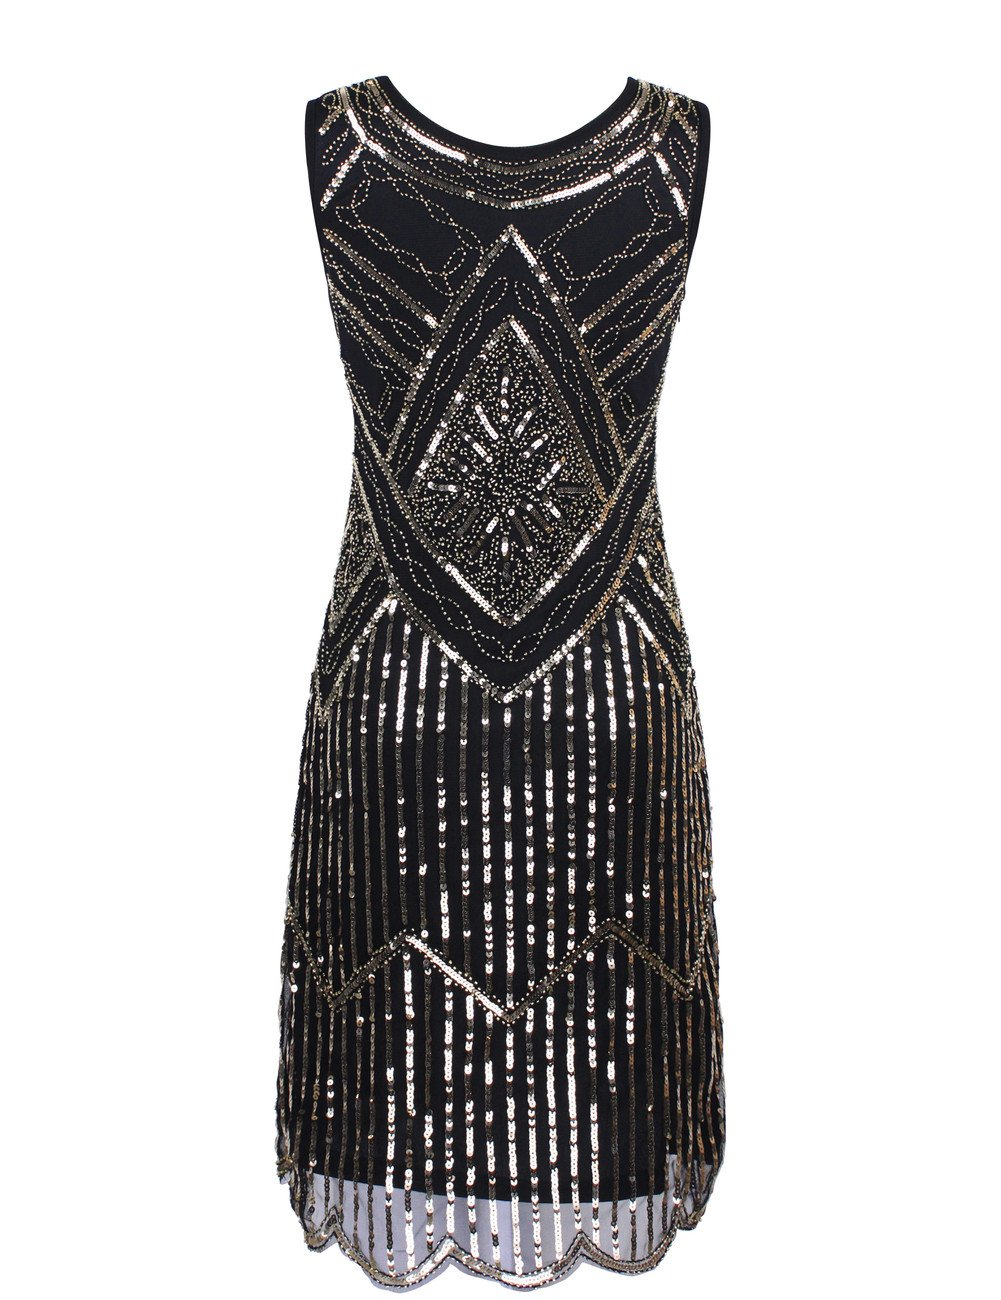 KAYAMIYA Women's 1920S Sequined Fringe Beaded Gatsby Flapper Evening Dress 1